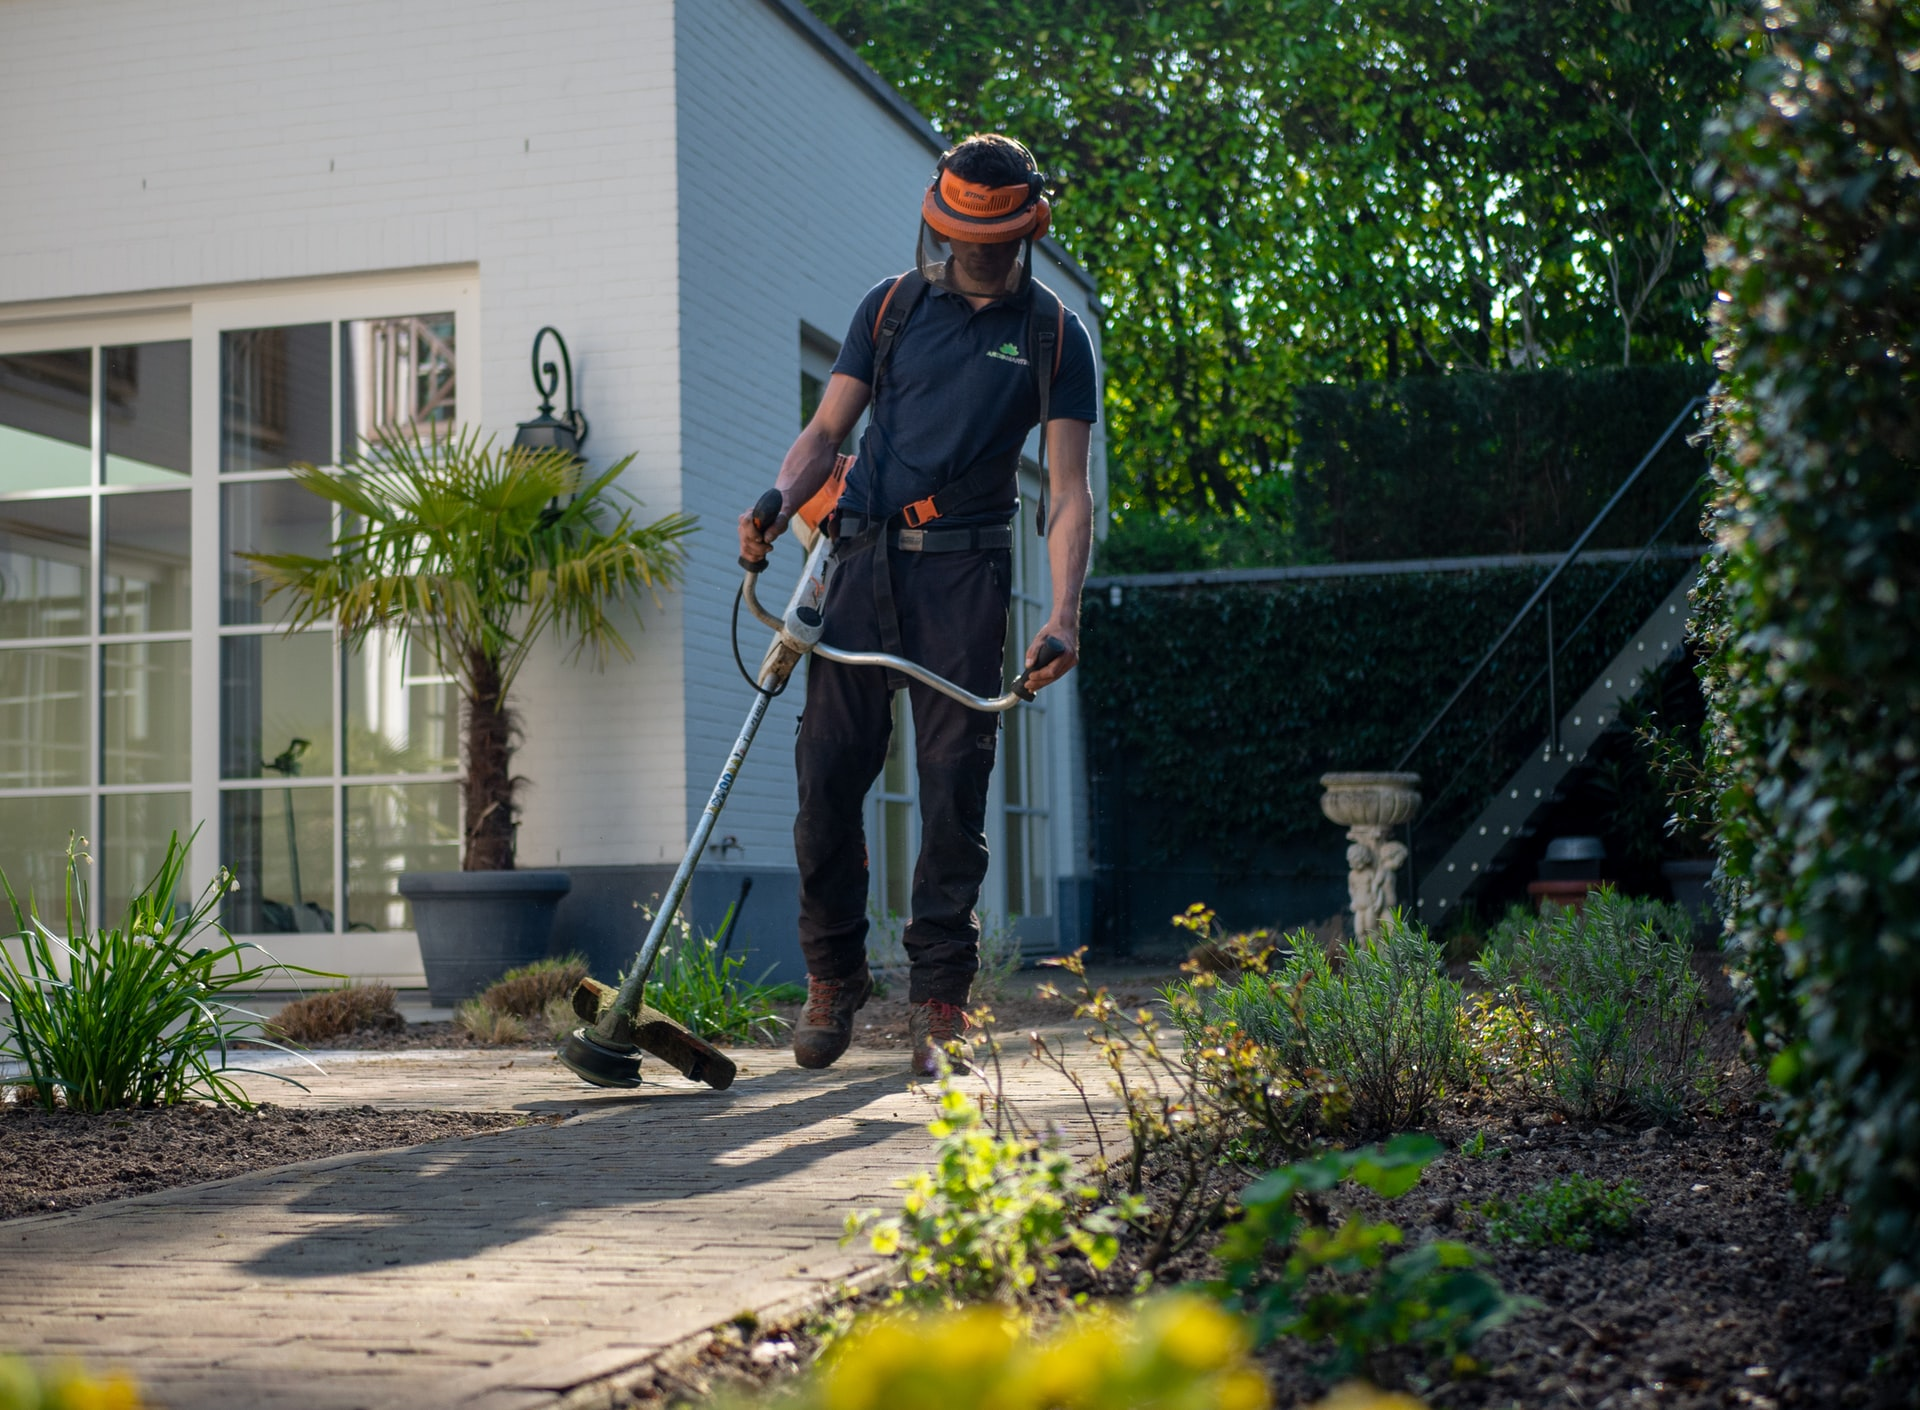 The 10 Best Scheduling Apps for Landscaping & Gardening Businesses: Free and Paid Tools to Shape Up Your Job Management